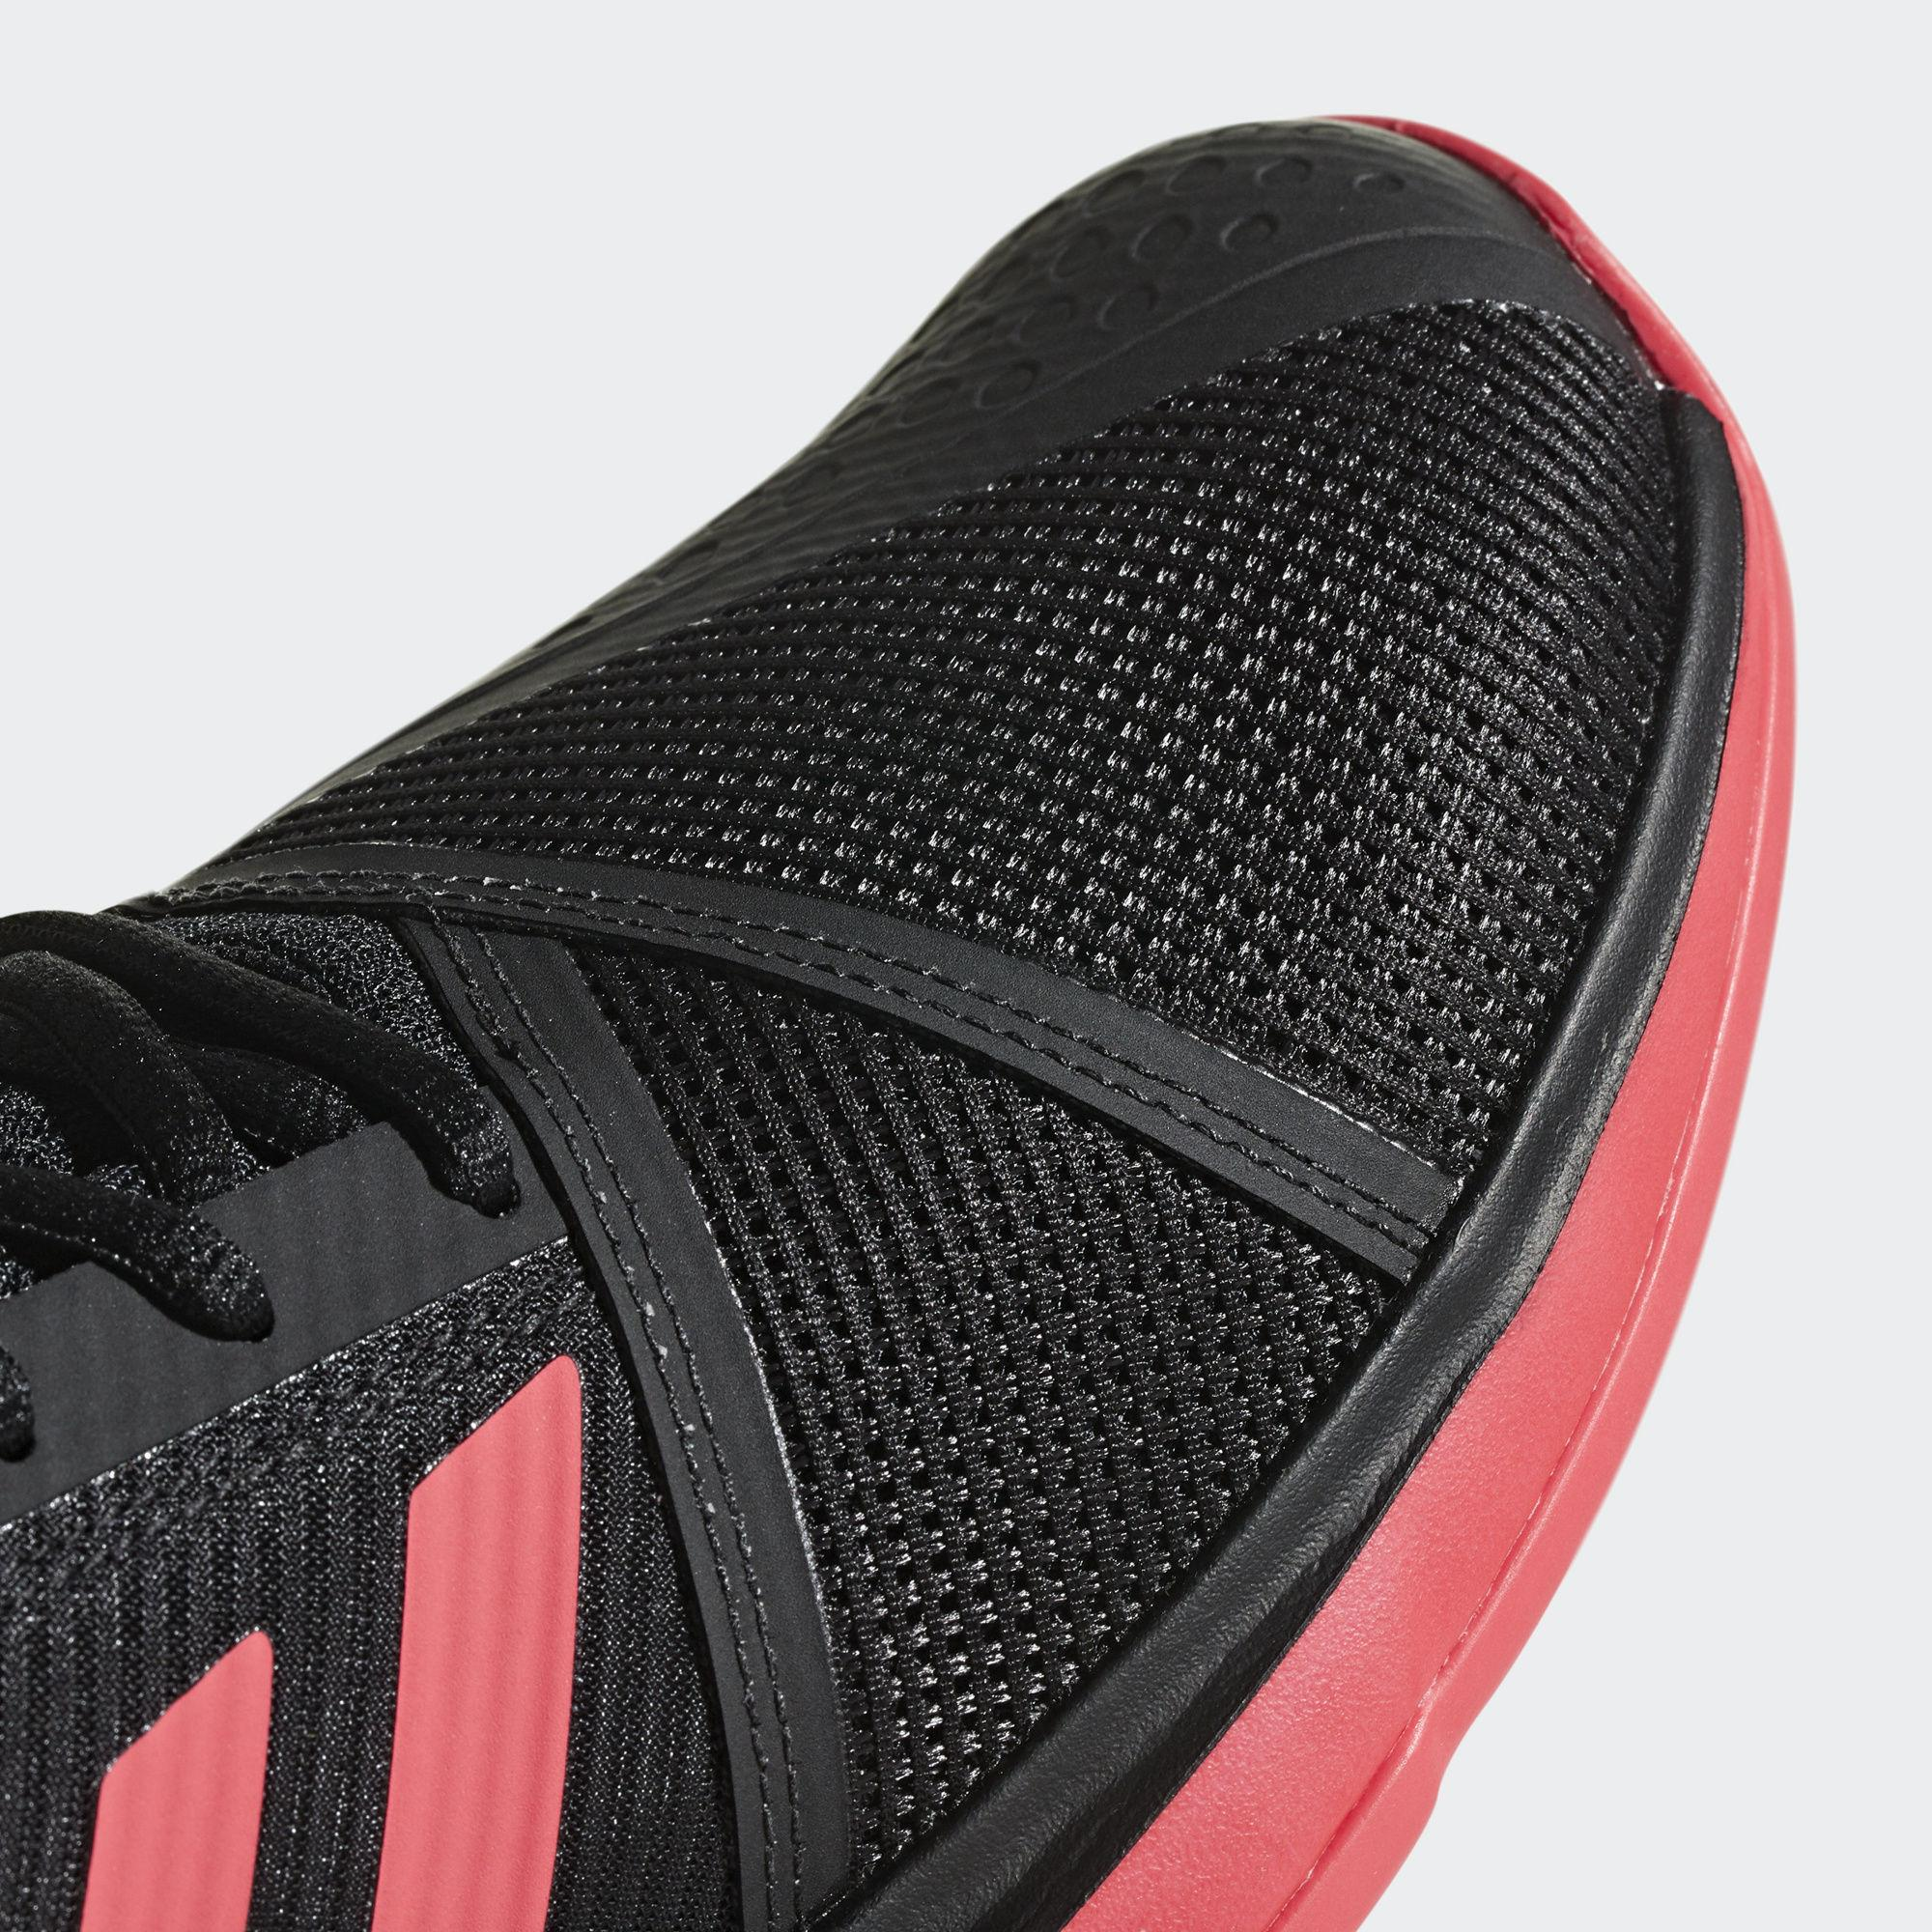 a410646c60614 Adidas Mens CourtJam Bounce Tennis Shoes - Core Black Shock Red ...